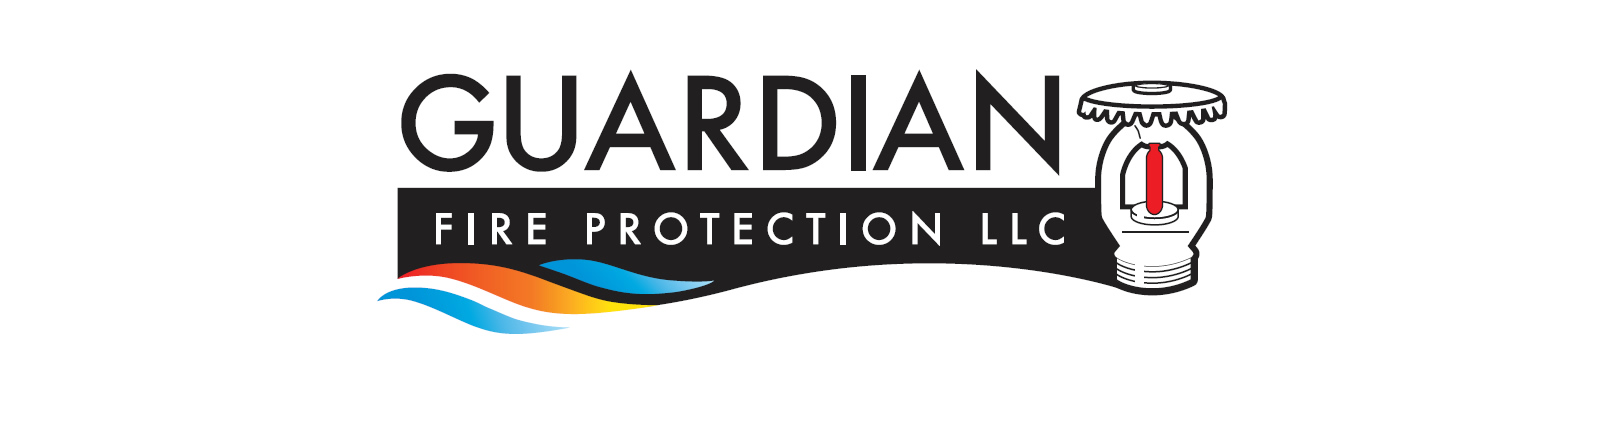 Guardian Fire Protection